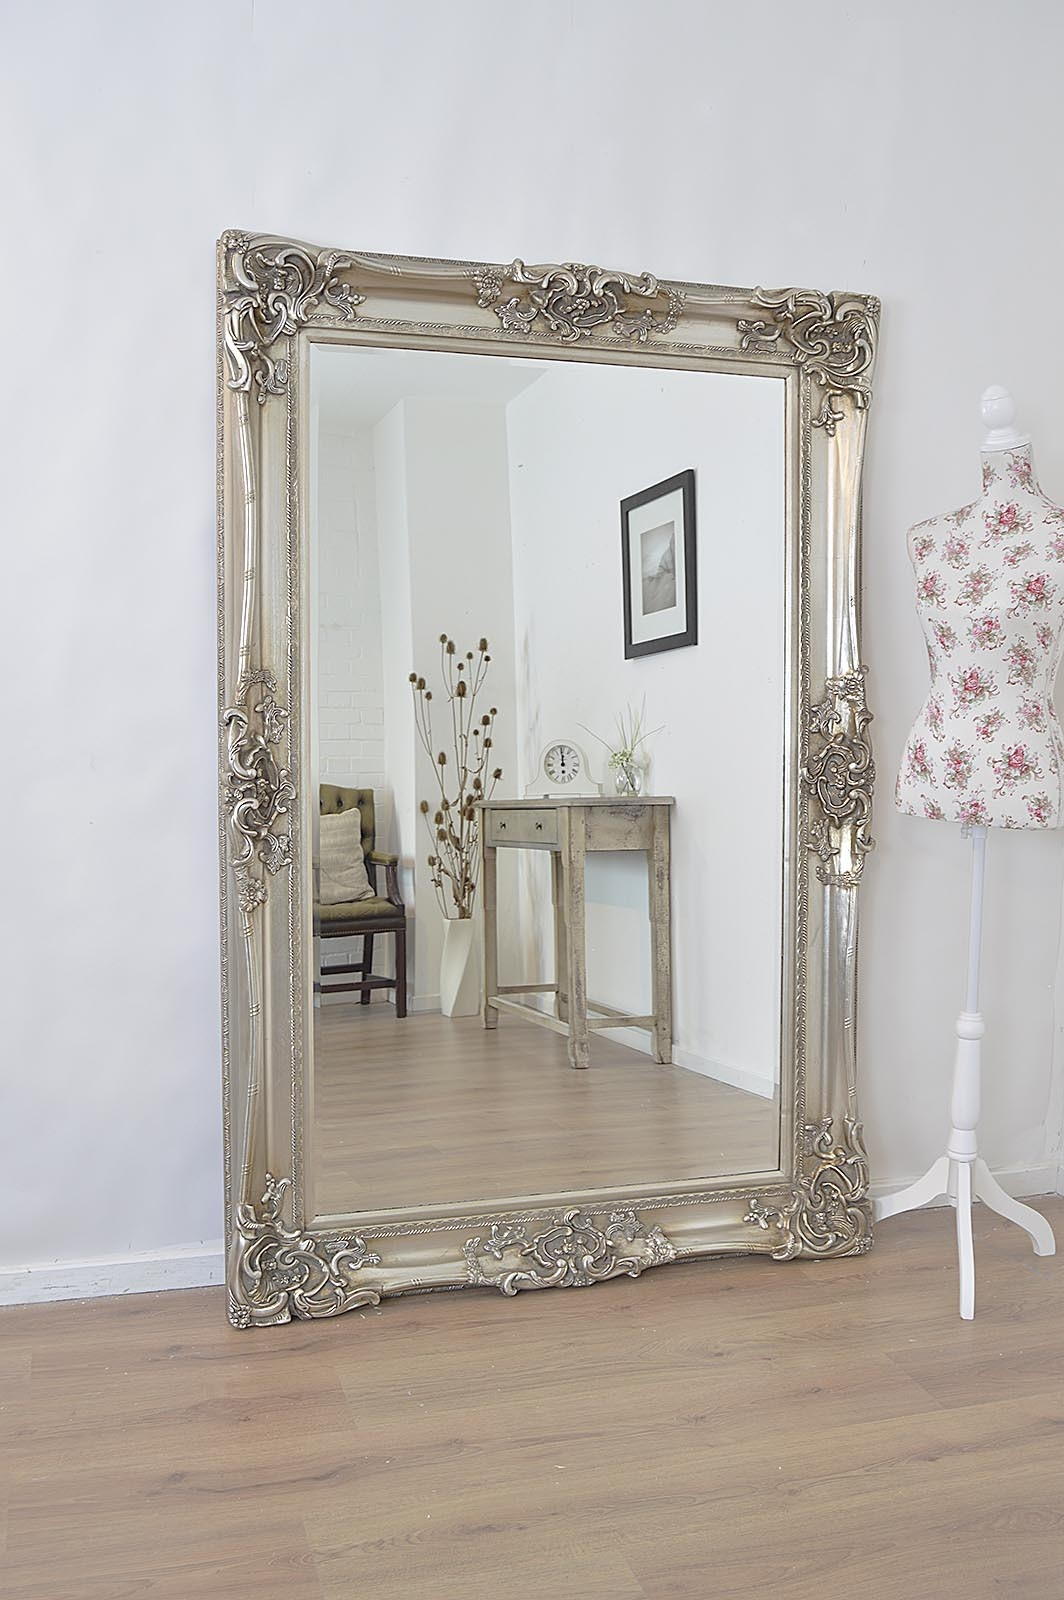 Fine Decoration Huge Wall Mirror Cozy Design Silver Ornate Huge Within Ornate Silver Mirrors (View 14 of 15)